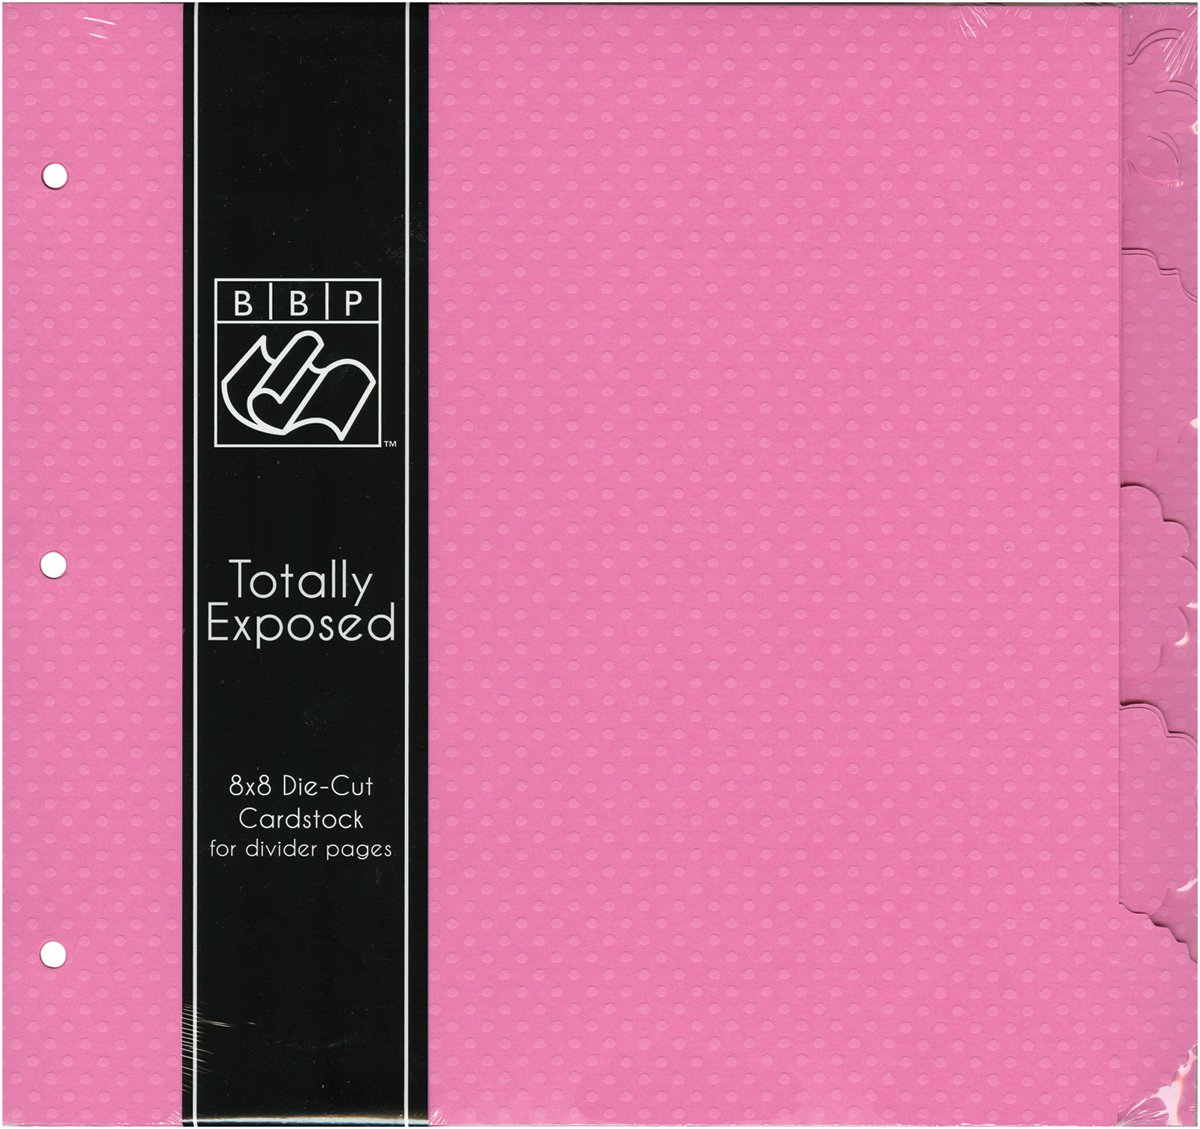 Bazzill Basics - 8 x 8 Cardstock Divider Pages with Tabs - Set of 5 - Slipper by Bazzill Basics (Image #1)